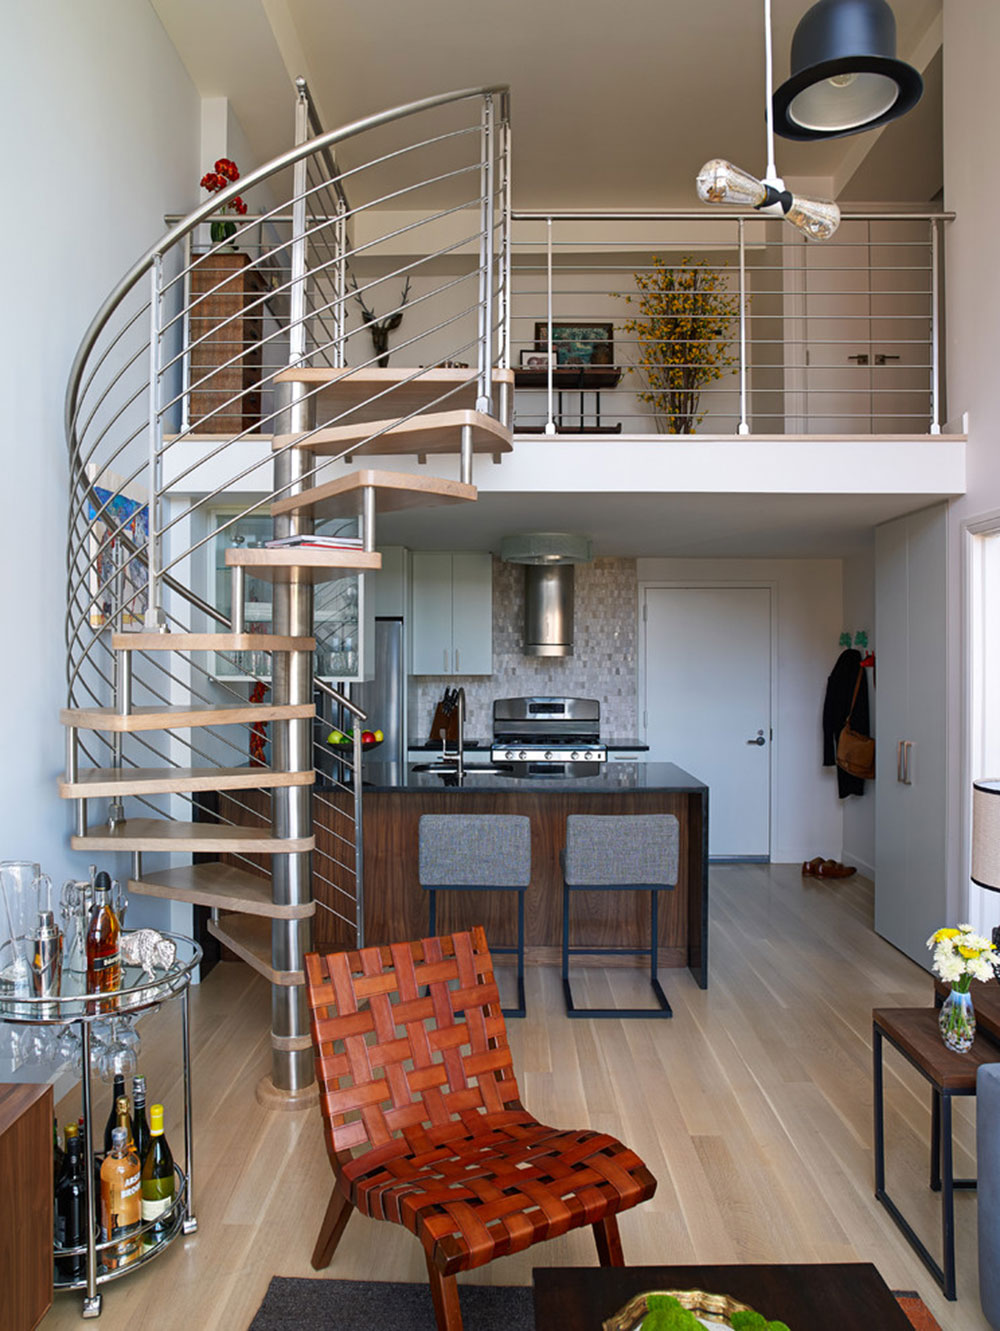 Urban-Retreat-by-EDGE-Design-LLC Spiral Staircase Pictures and Things You Should Know About Them